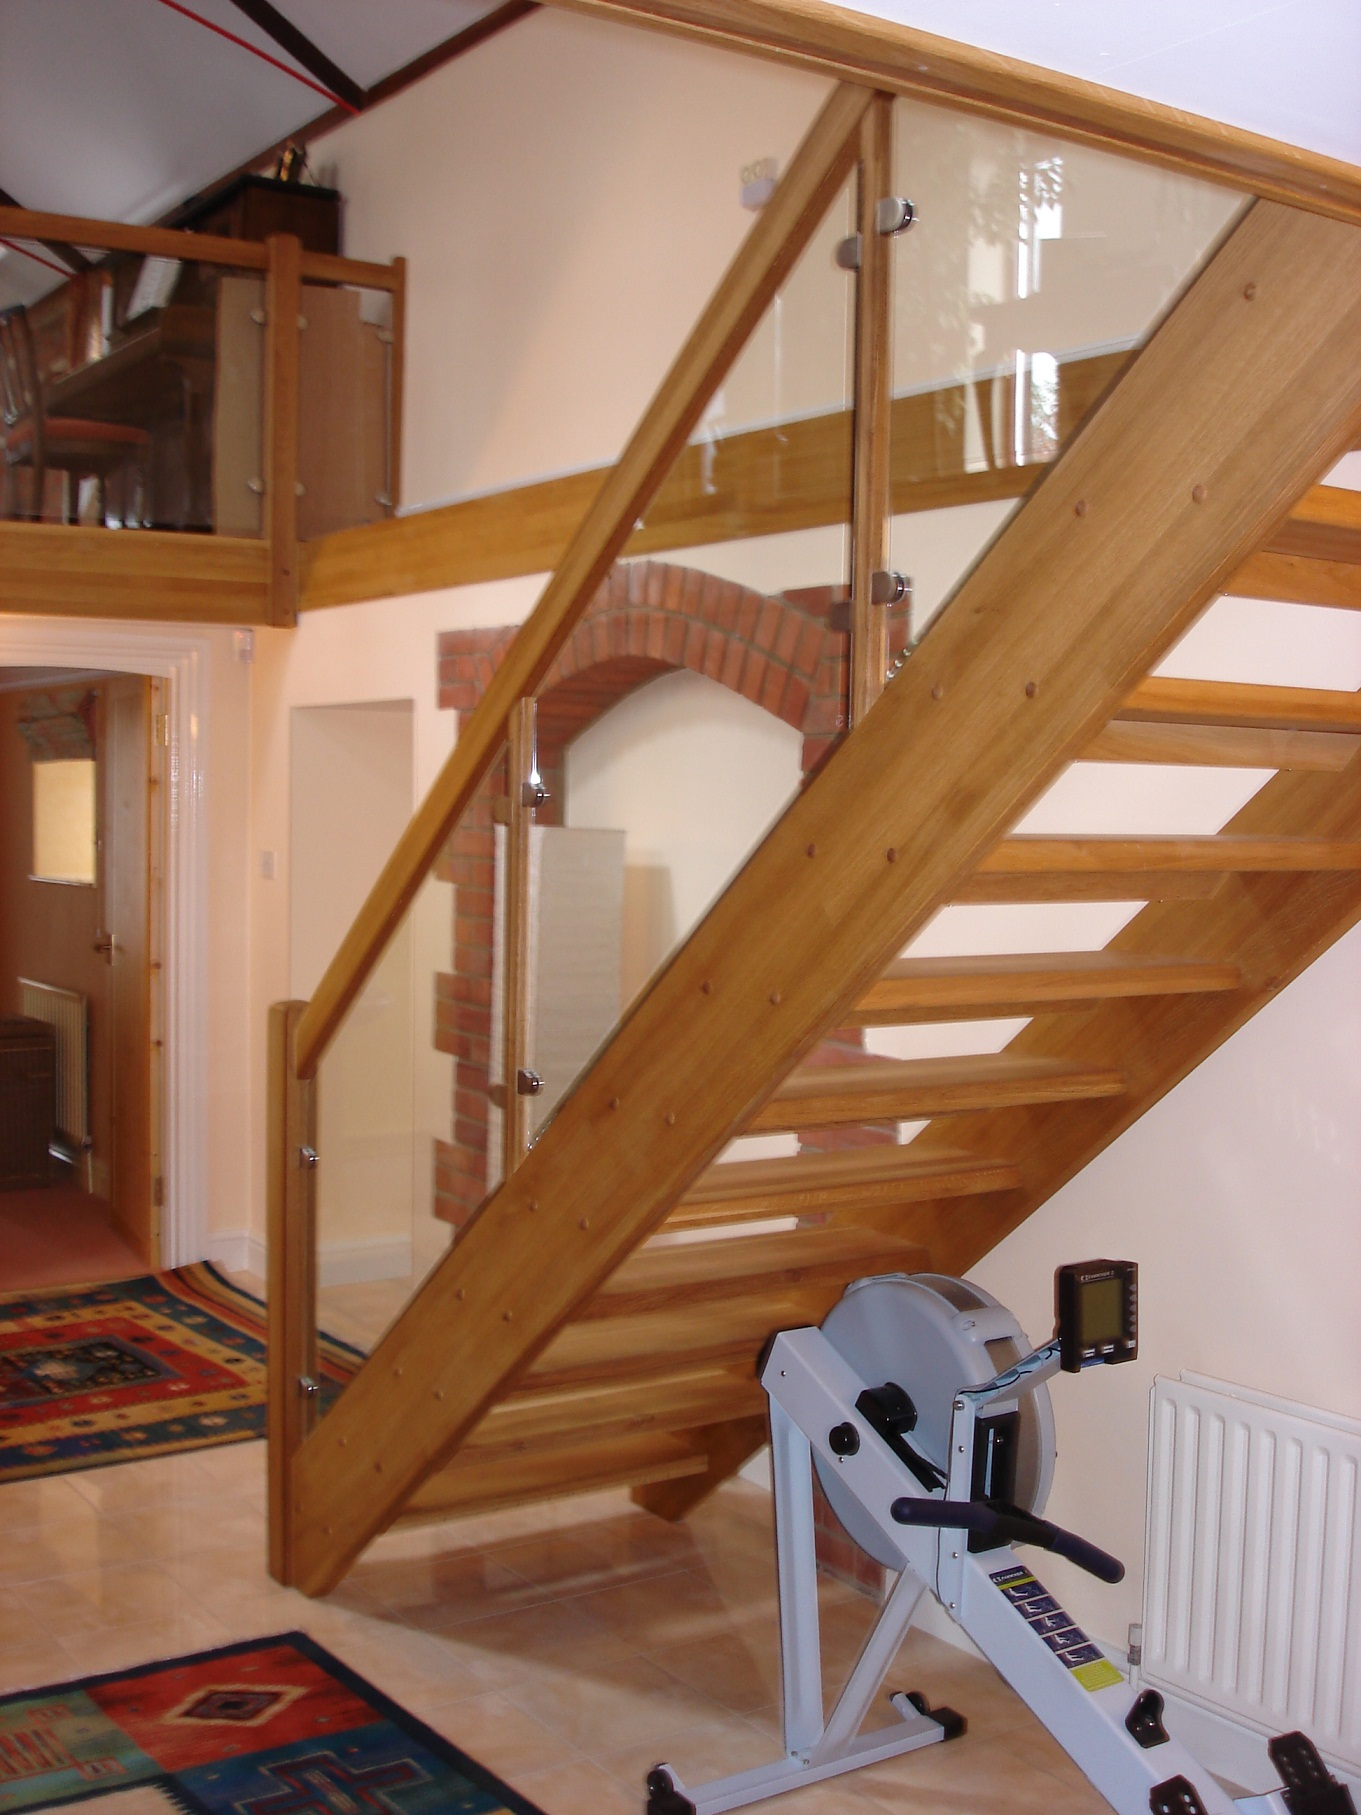 Wooden Staircases For Sale Wooden Staircase For House